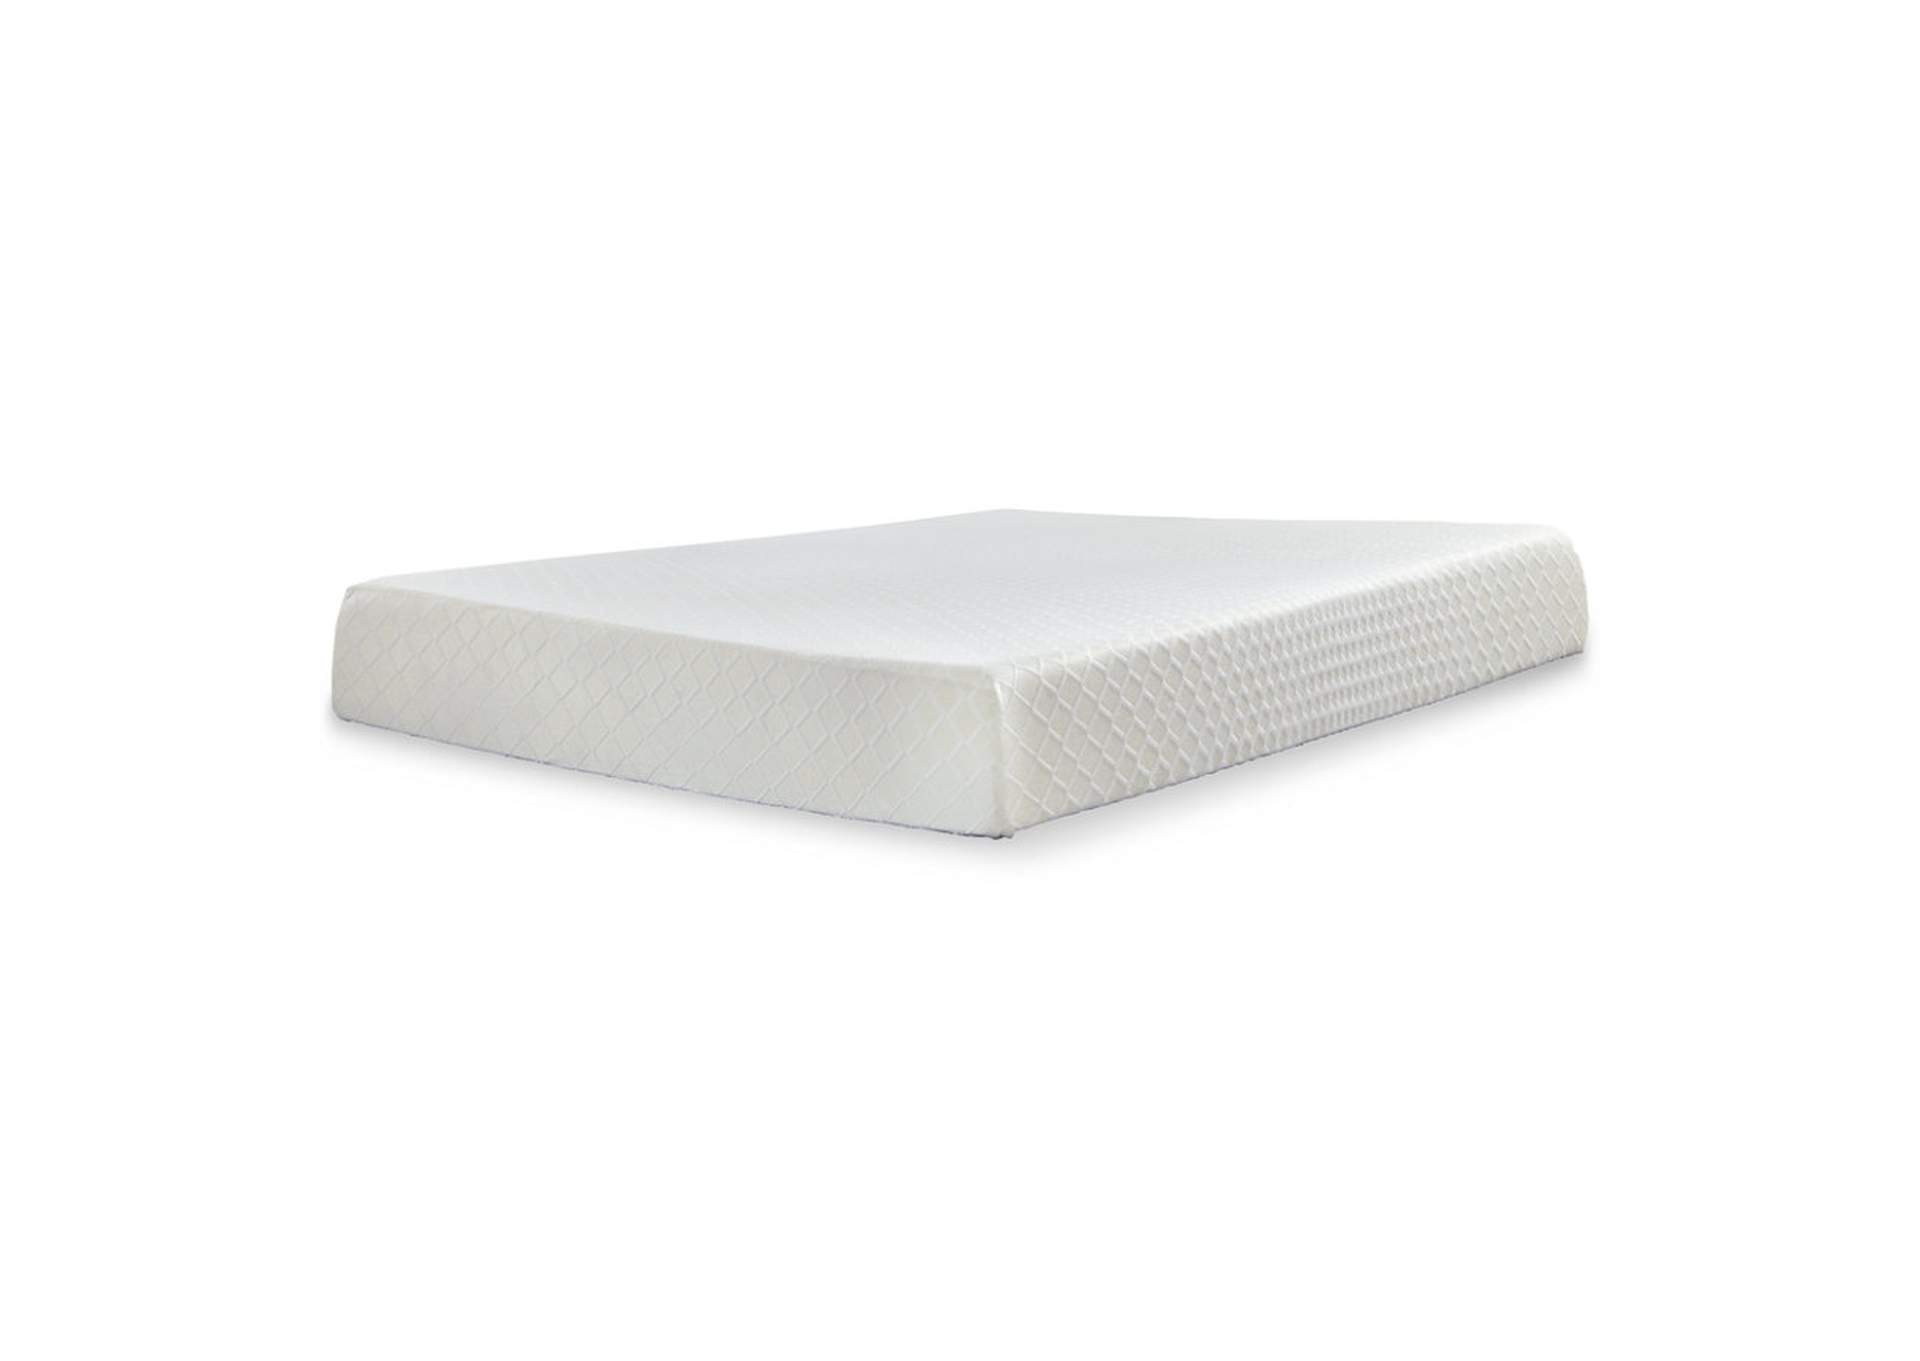 10 Inch Chime Memory Foam White Full Mattress,Sierra Sleep by Ashley